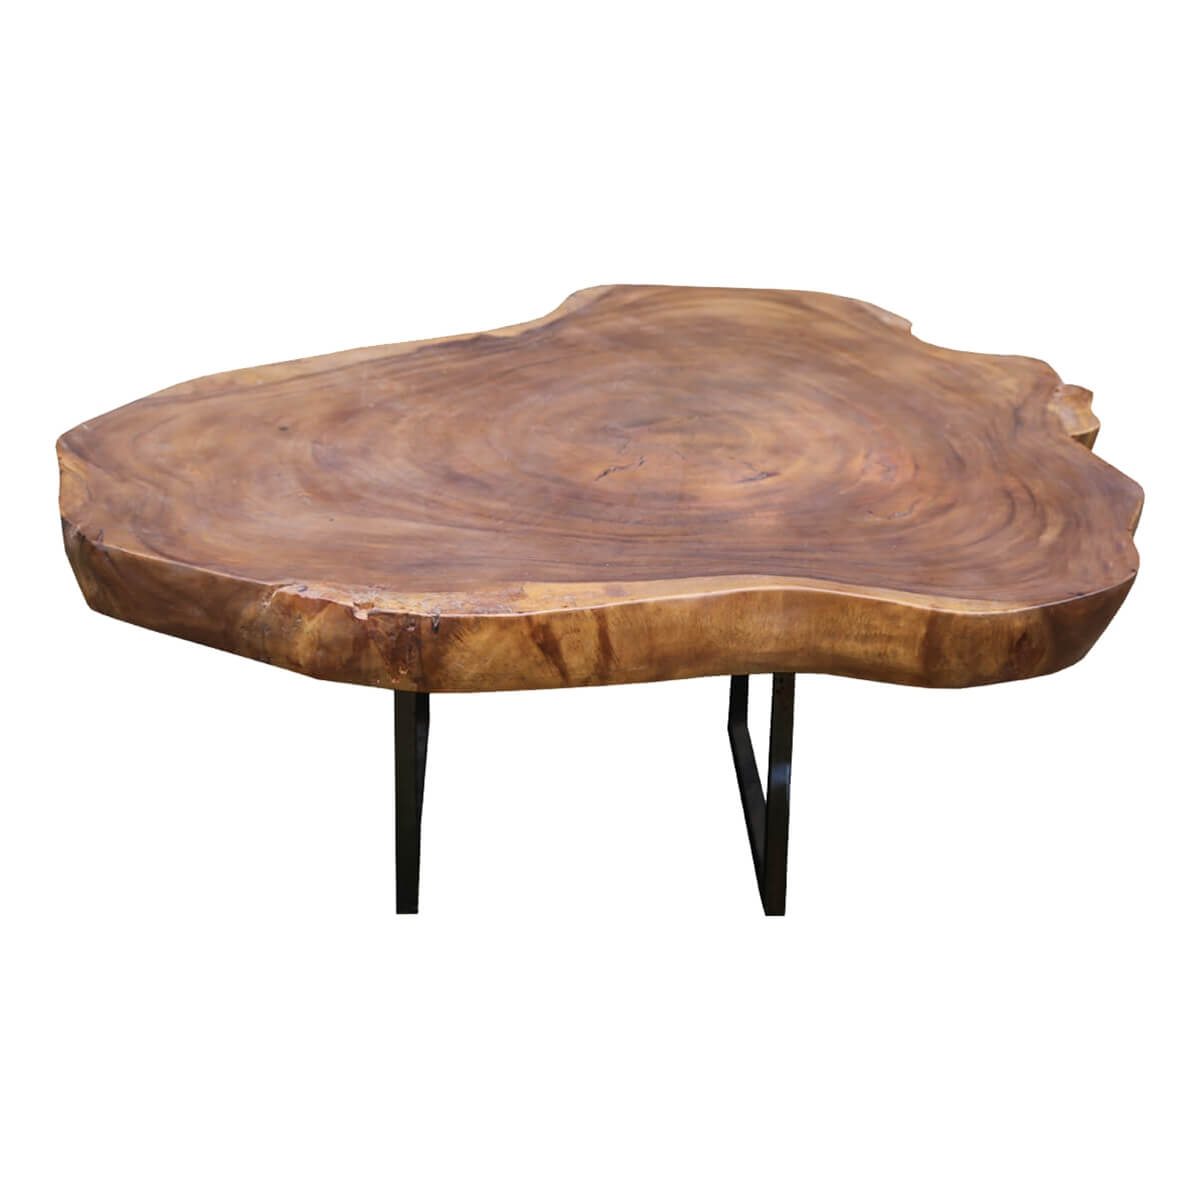 Live Edge Coffee Table Natural Tree Stump Live Edge Coffee Table Made Of Real Wood